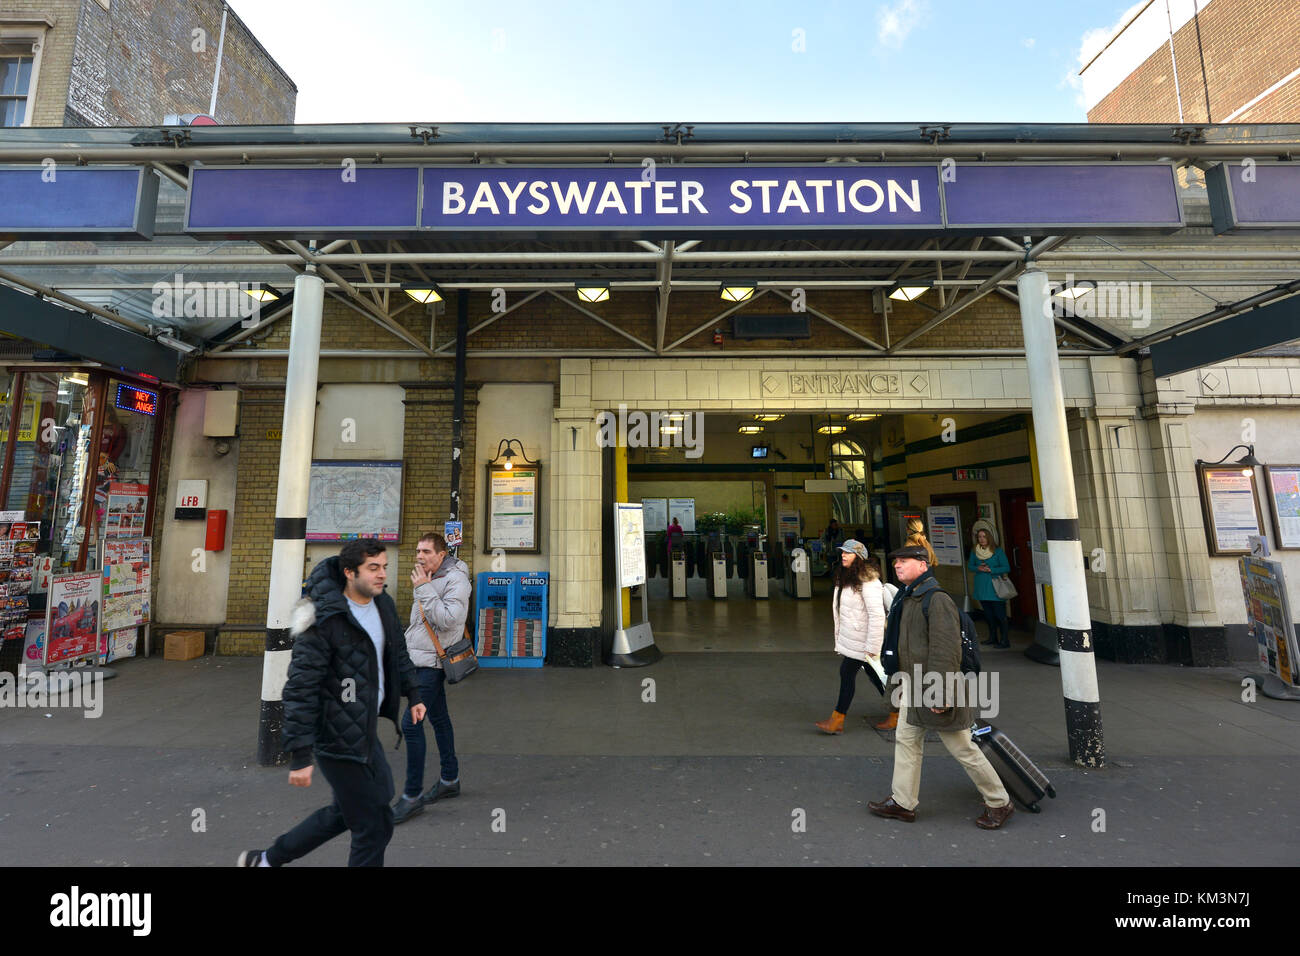 Bayswater Station Stock Photos Amp Bayswater Station Stock